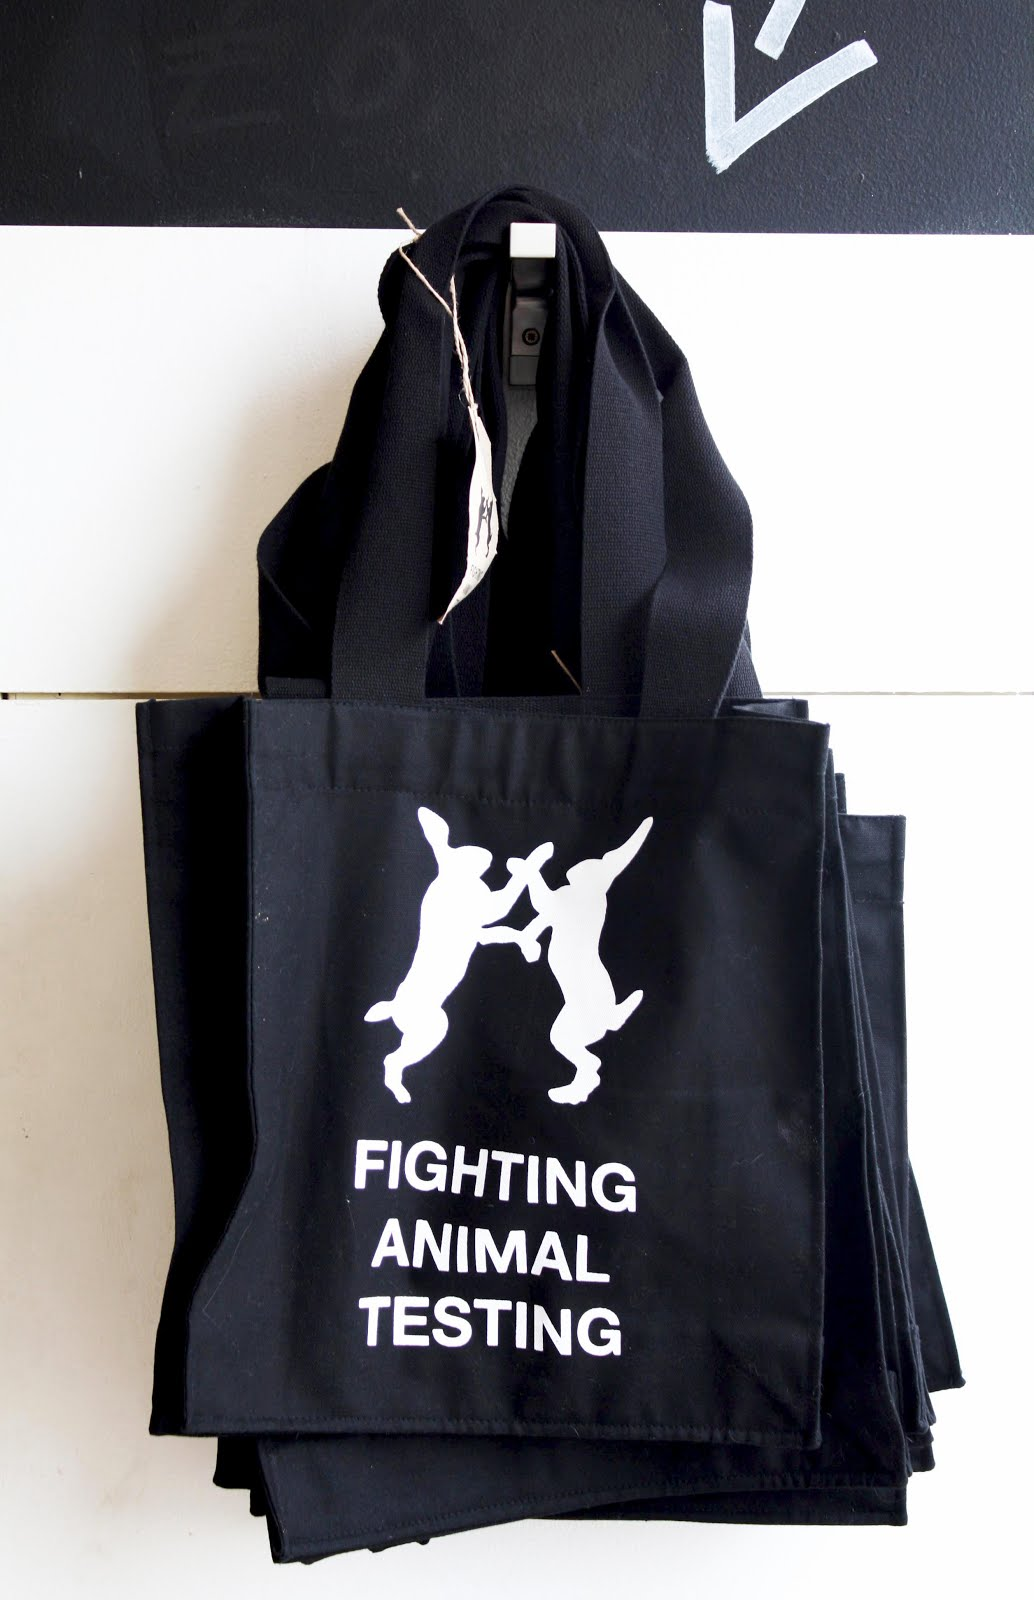 c91a7b7ee7 Lush are advocates for fighting against animal testing and ensure the  buying of their ingredients are ethically sourced. They really are all  types of good.